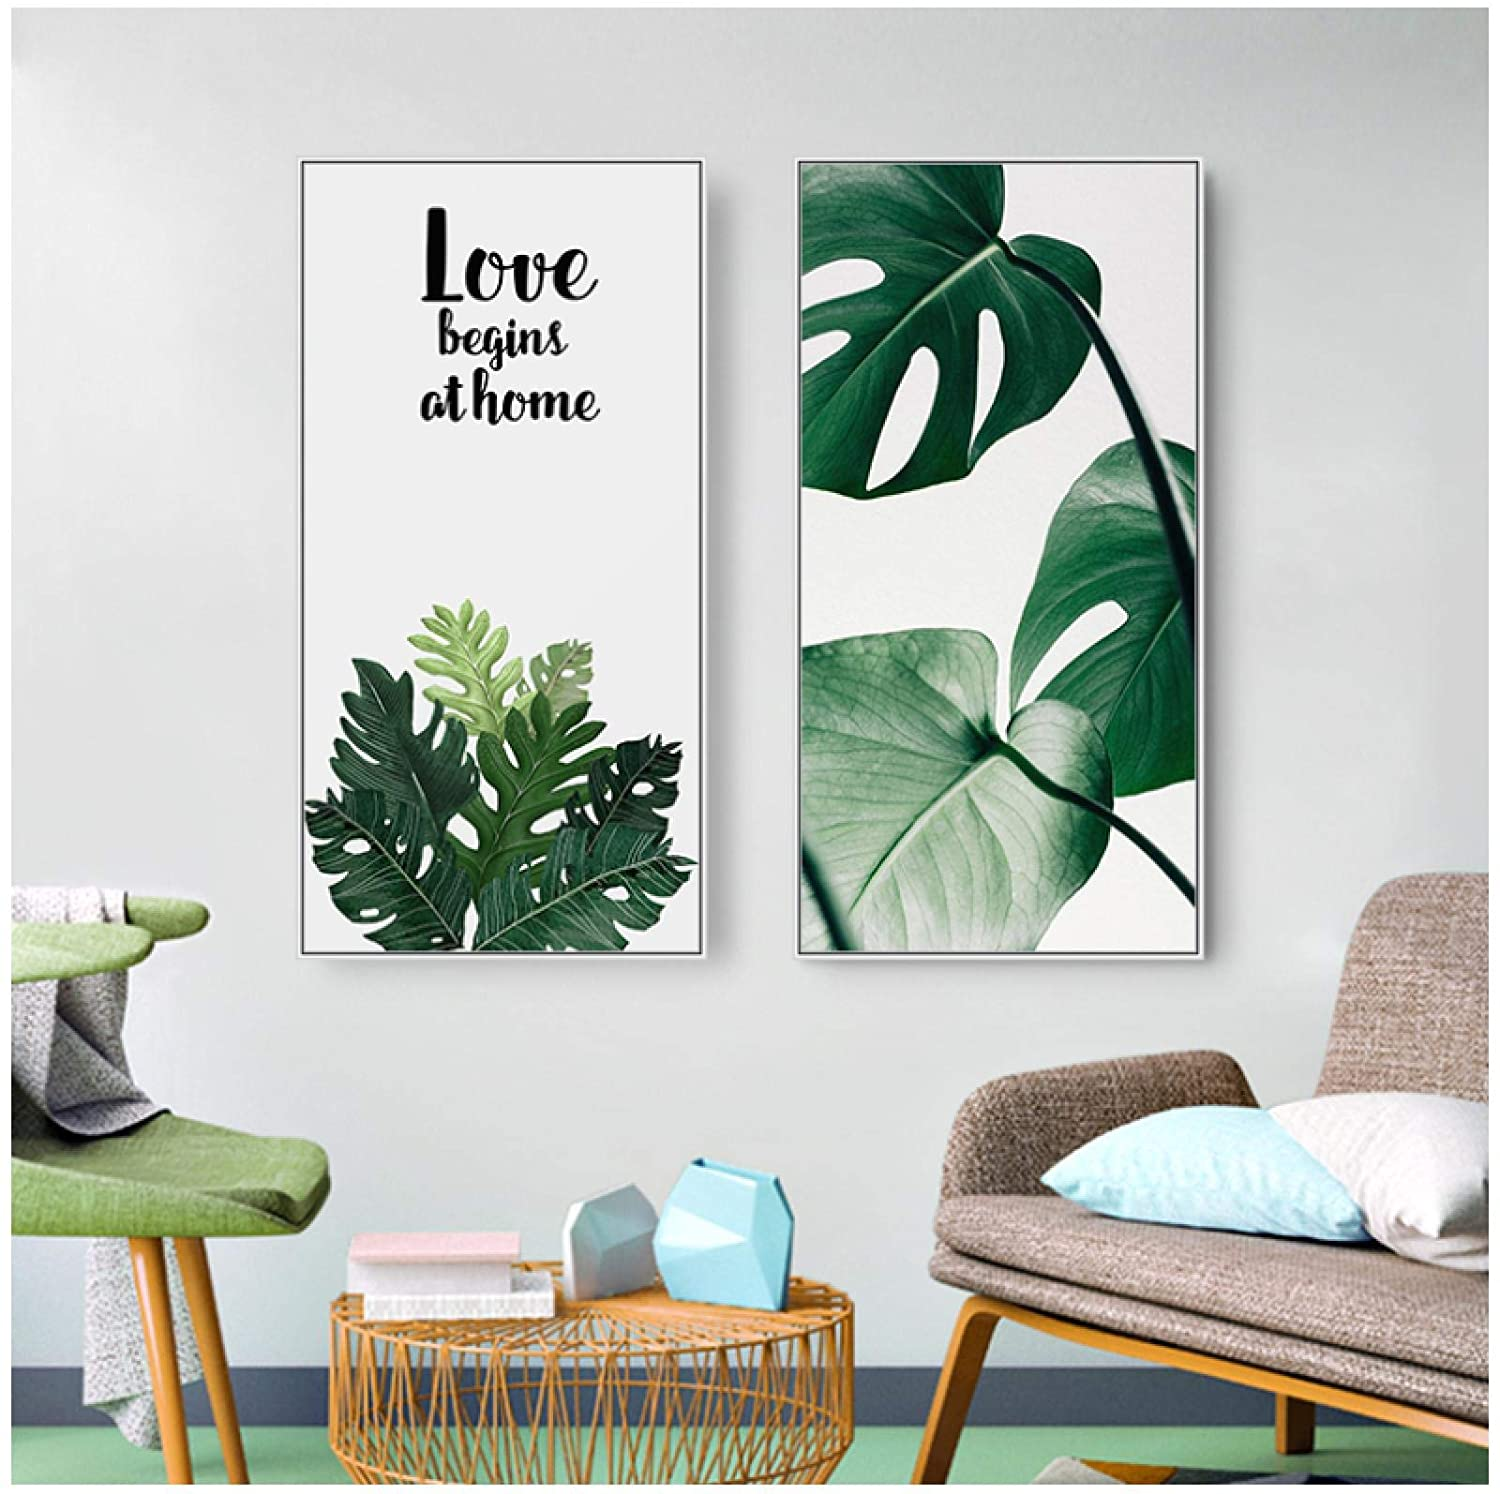 Wall Art ZXYFBH Bird Leaves Wall Art Canvas Painting Green Style Plant Posters and Prints Decorative Picture Modern Home Decoratio 27.8x11.8in(20x30cm) x2psc No Frame